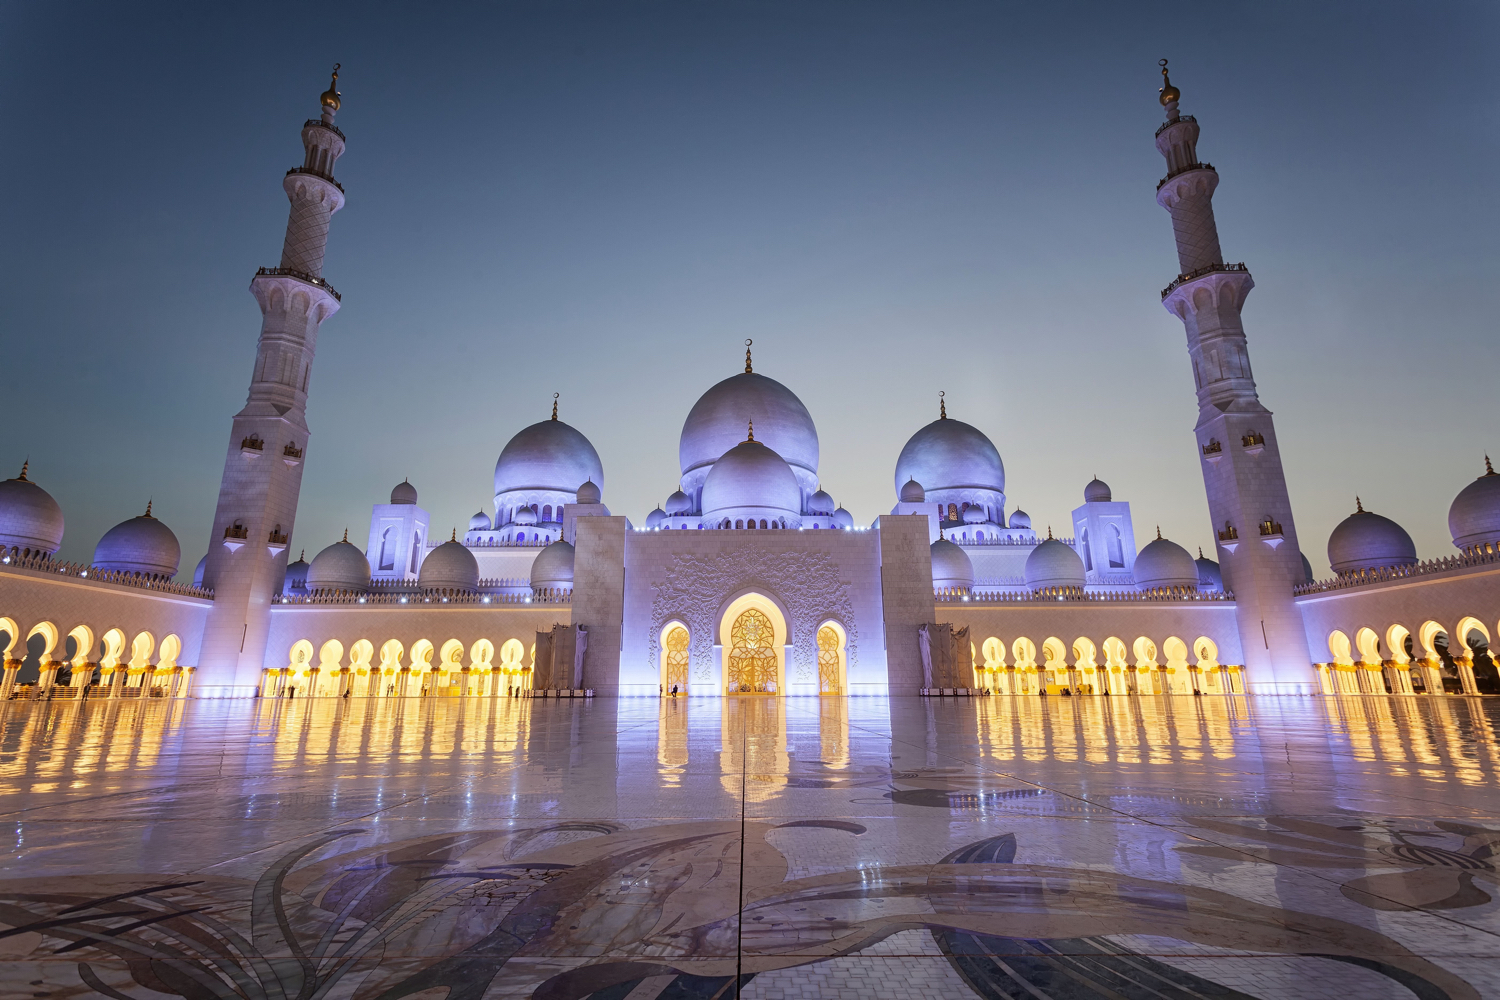 Image: This photo has not been adjusted for barrel distortion since the minarets lead the eye into t...